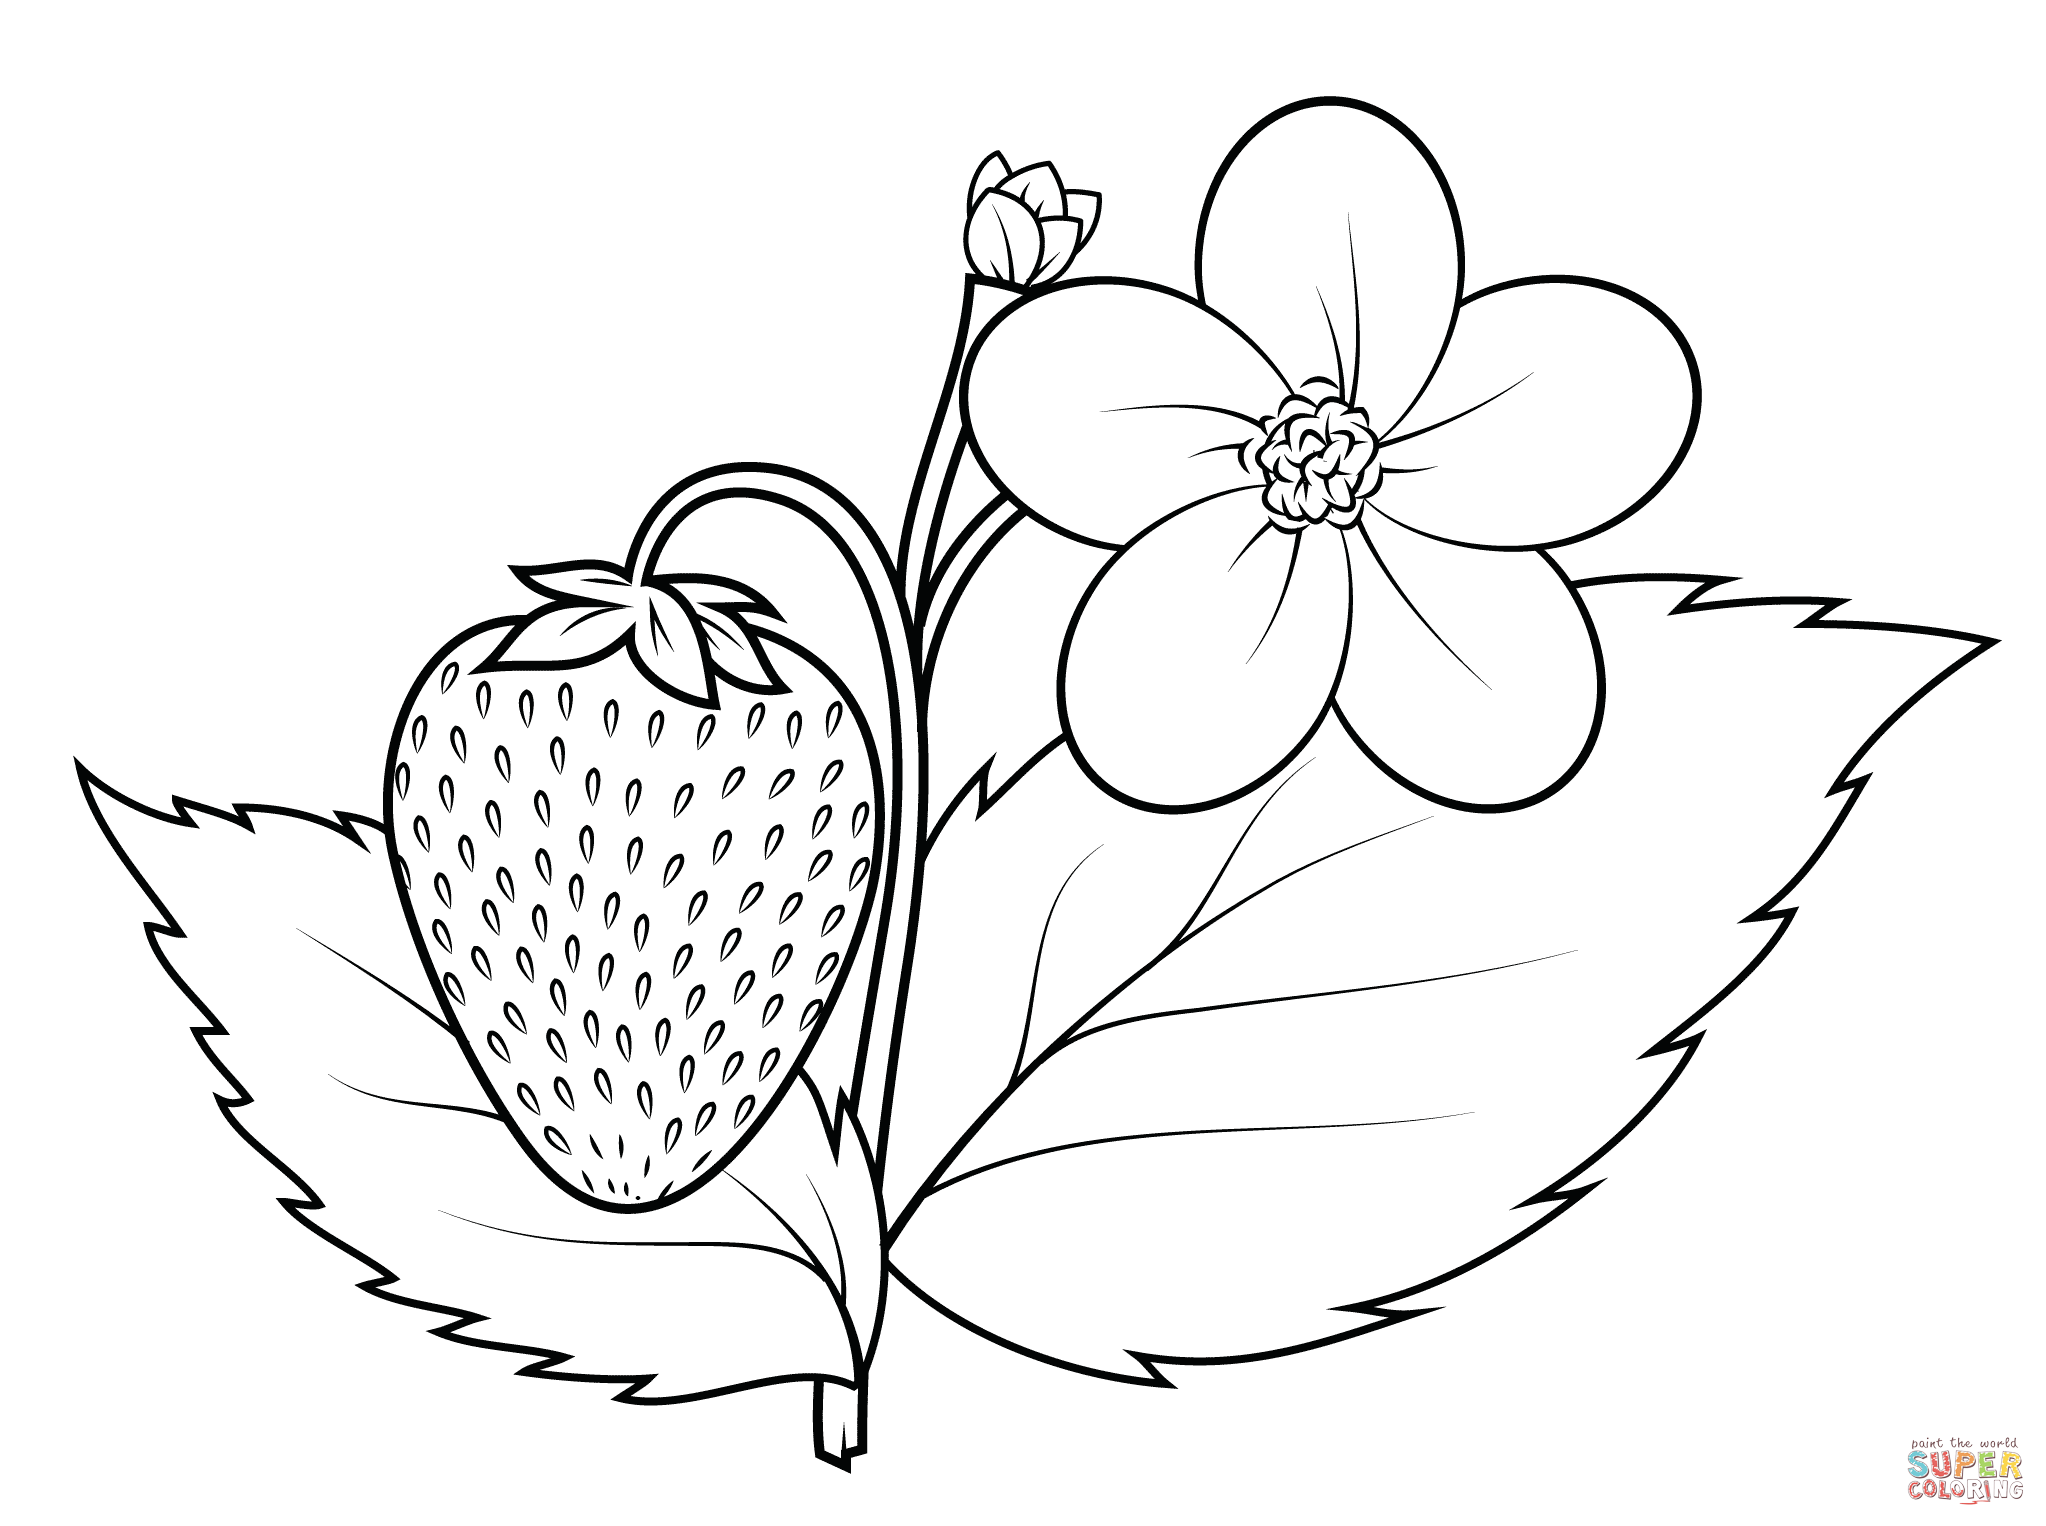 Strawberry Plant Coloring Page